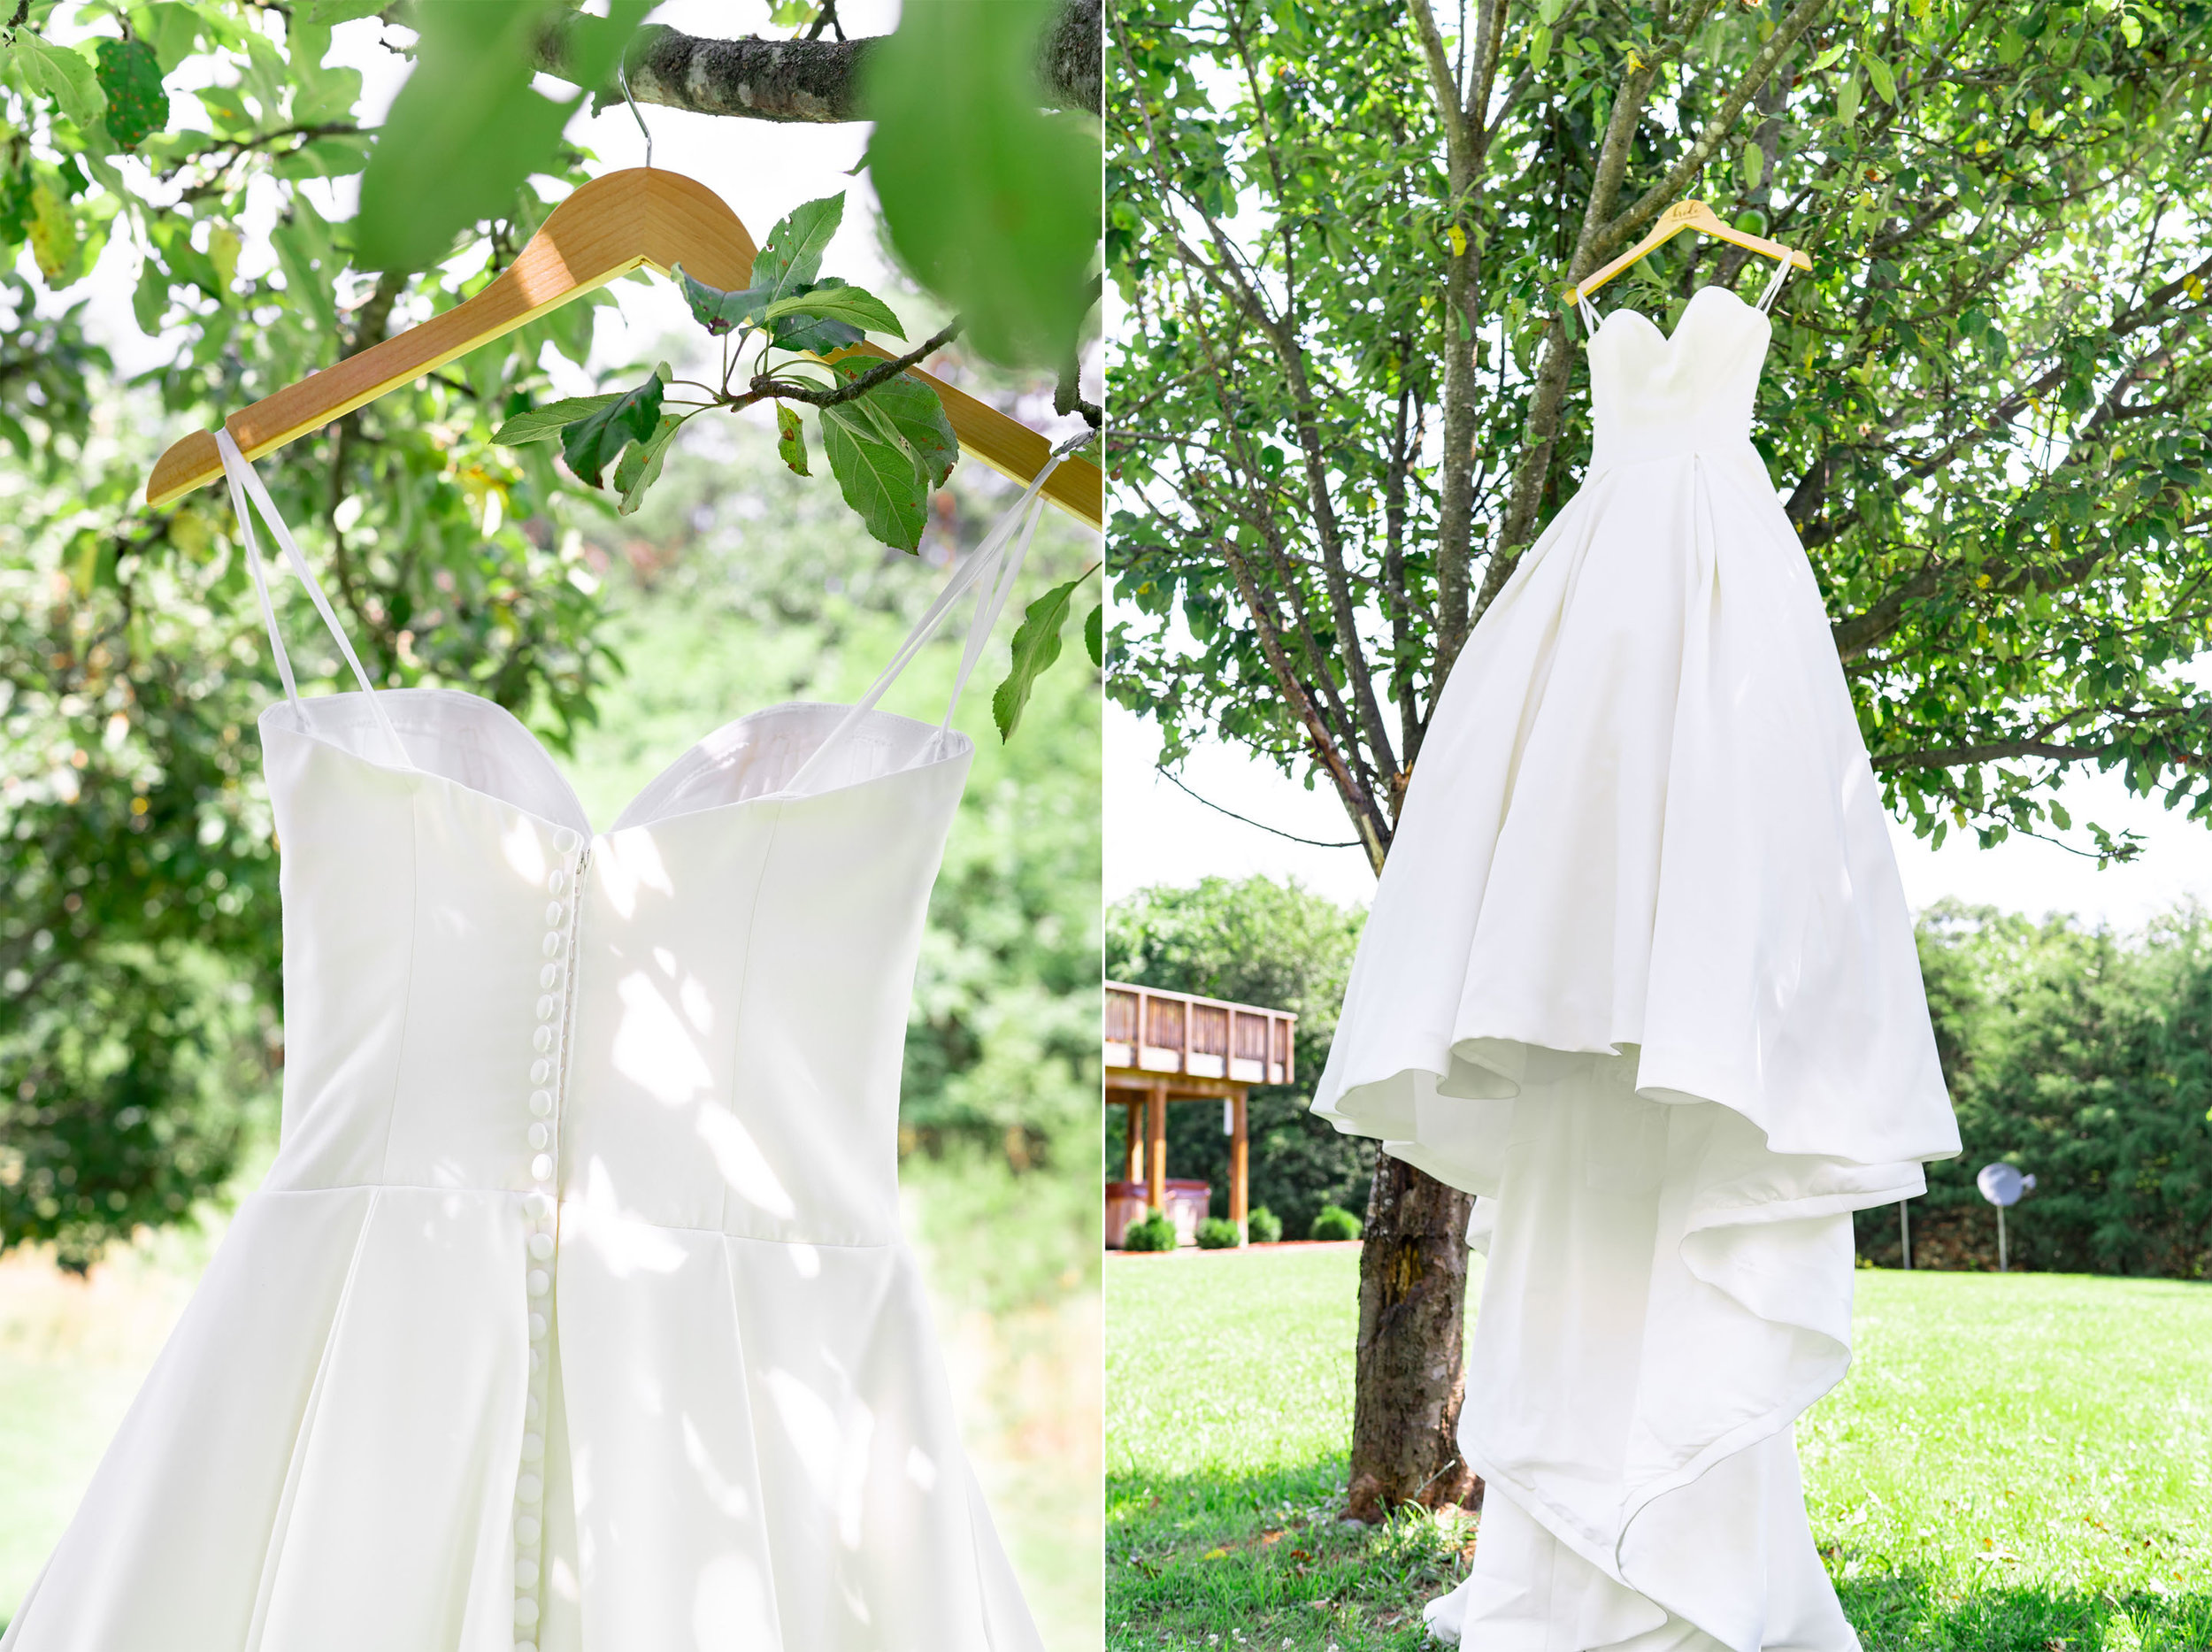 Gown hanging from a tree at Shenendoah cabin villa wedding